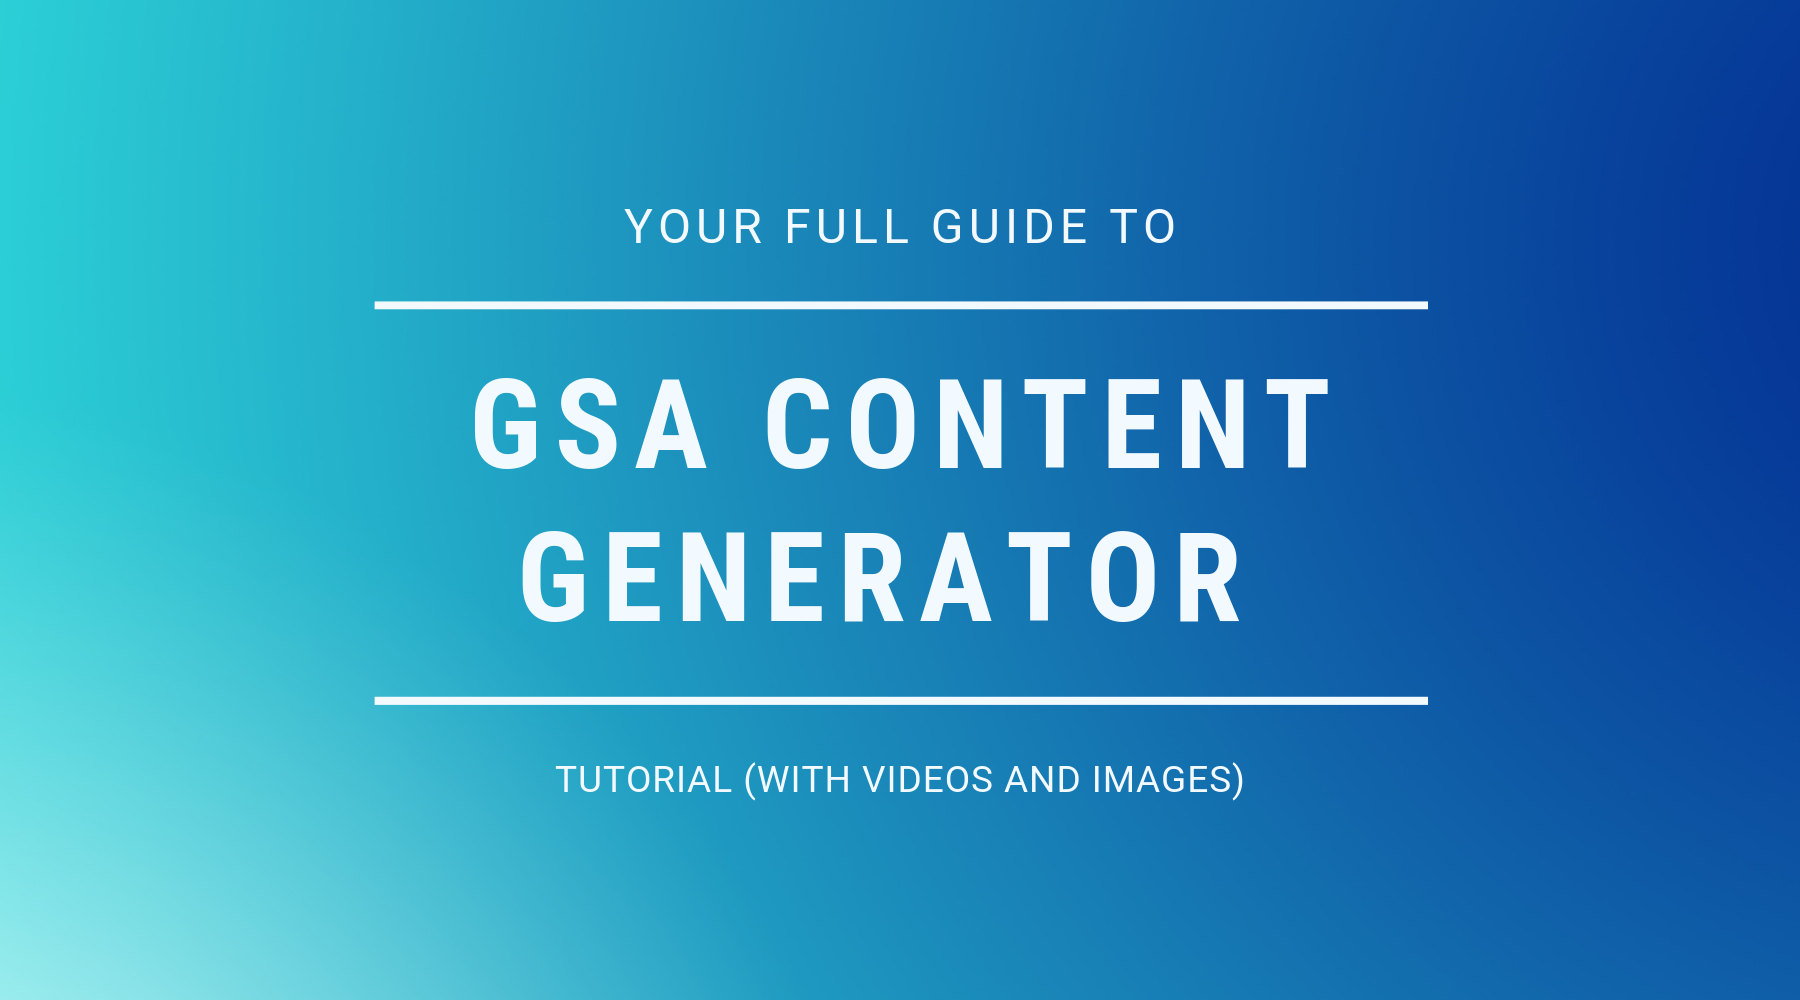 GSA Content Generator Tutorial (With Images and Videos)